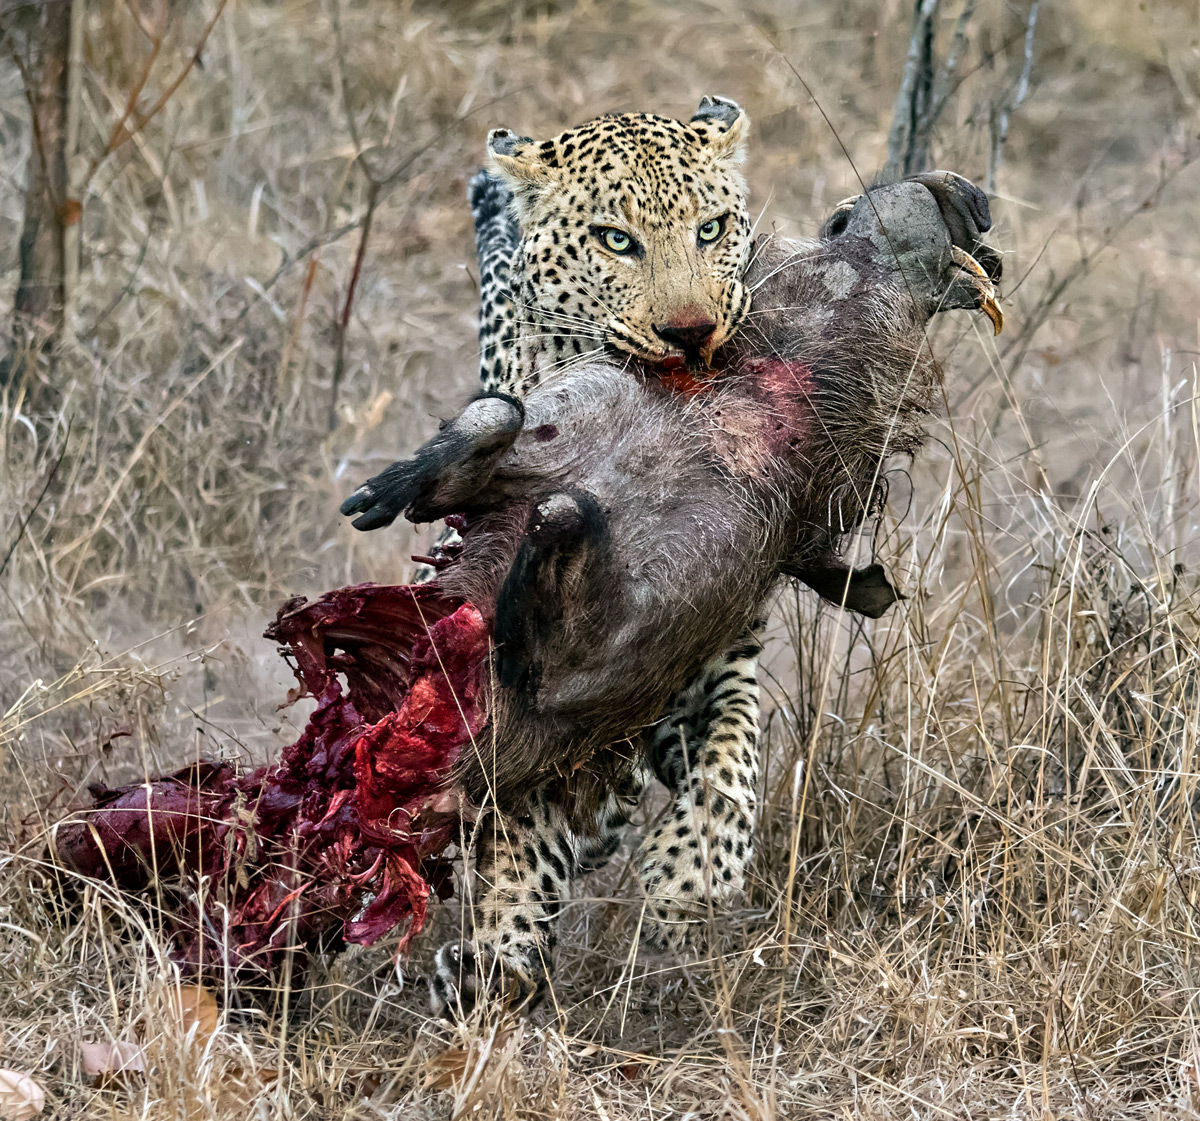 """This male leopard retrieved his warthog kill from a spotted hyena. Here he is running with the kill away from the hyena towards a tree."" – Kruger National Park, South Africa © Ernest Porter"